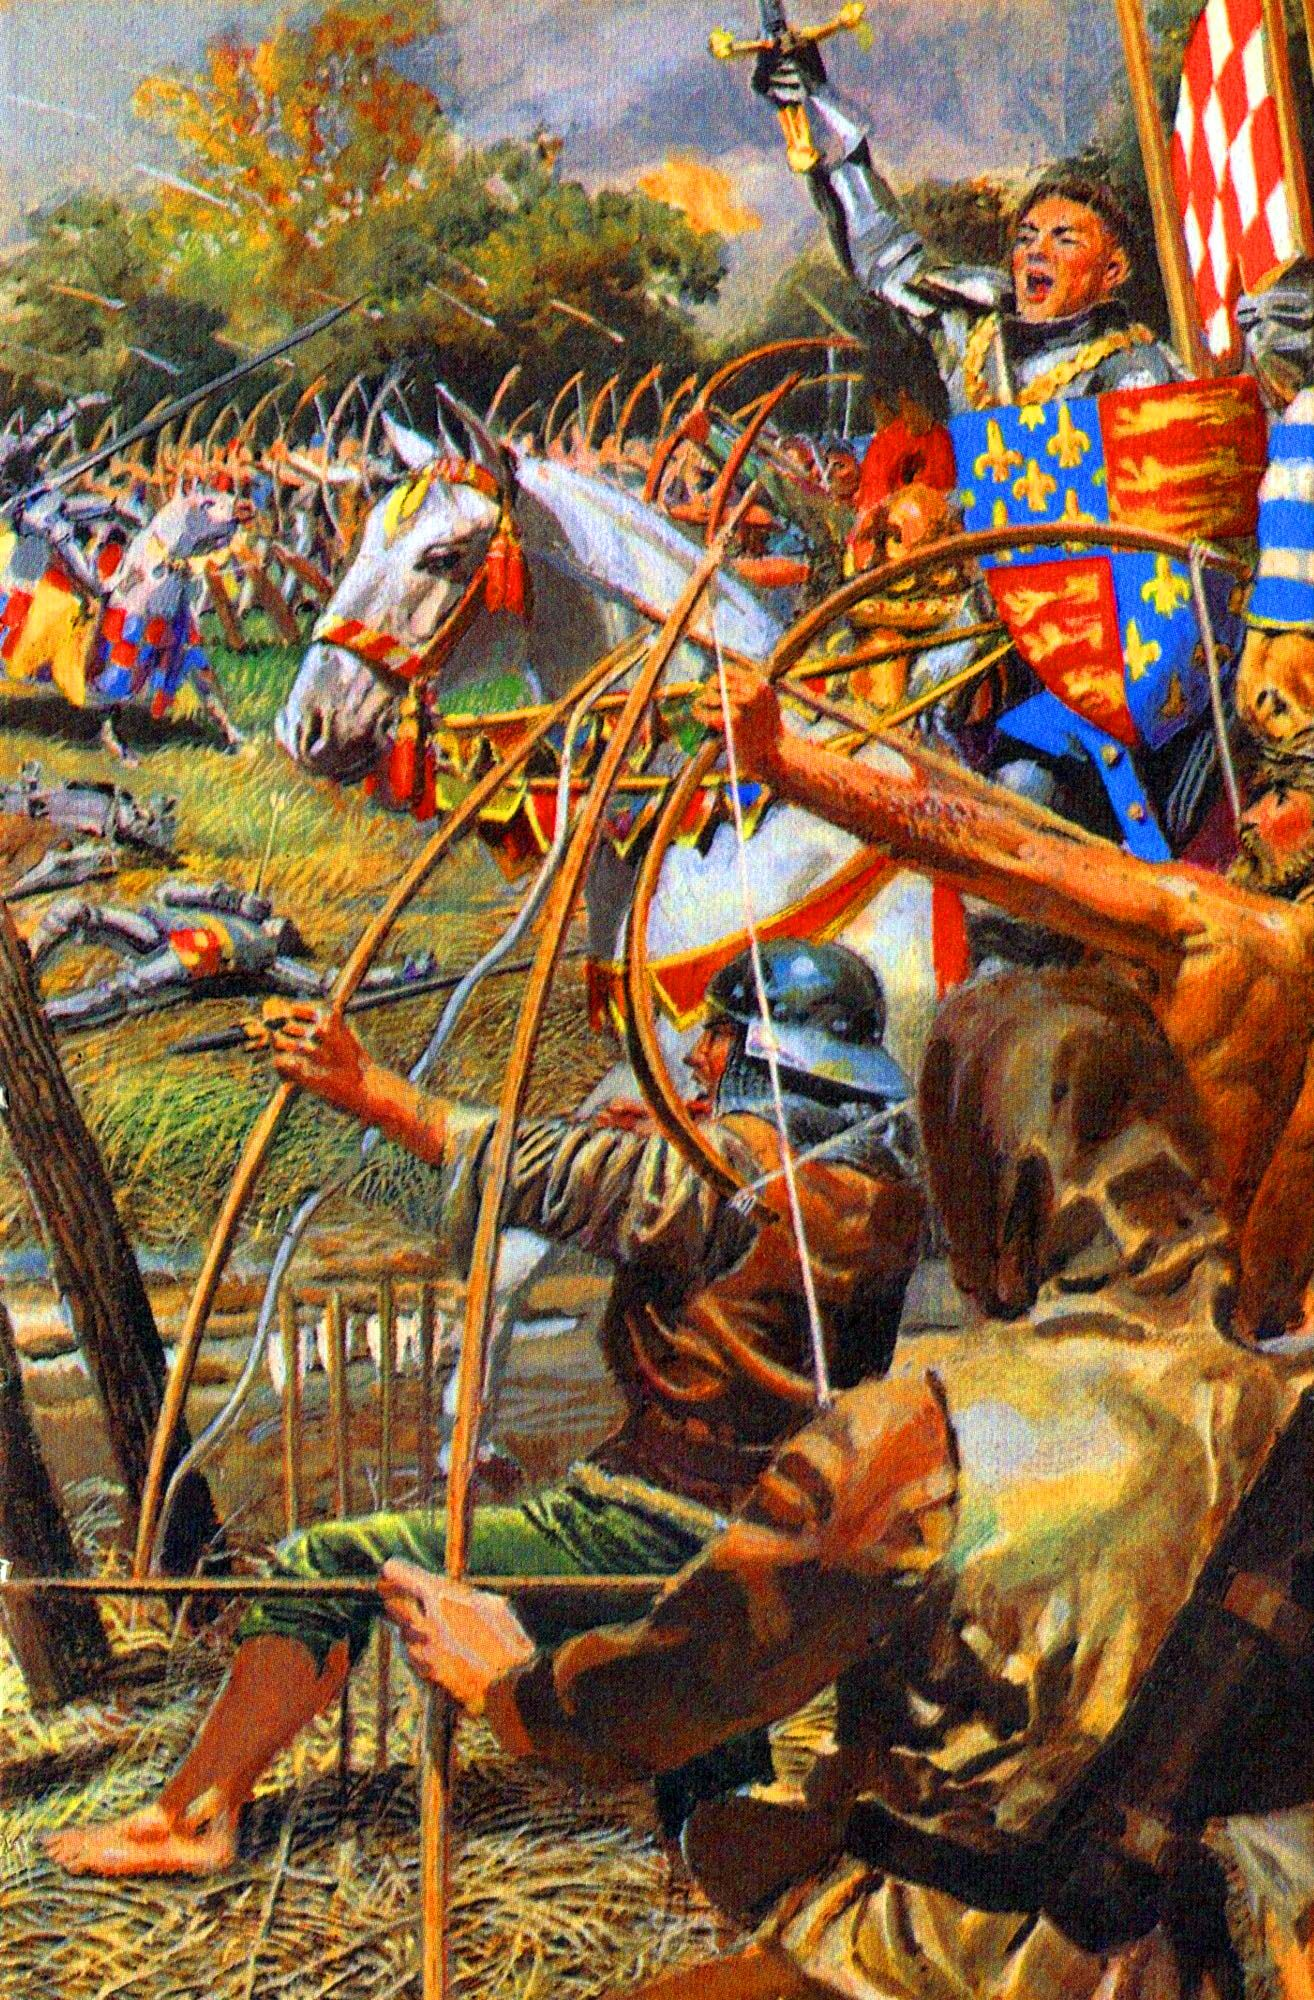 10 things you (probably) didn't know about Henry V and the battle of Agincourt